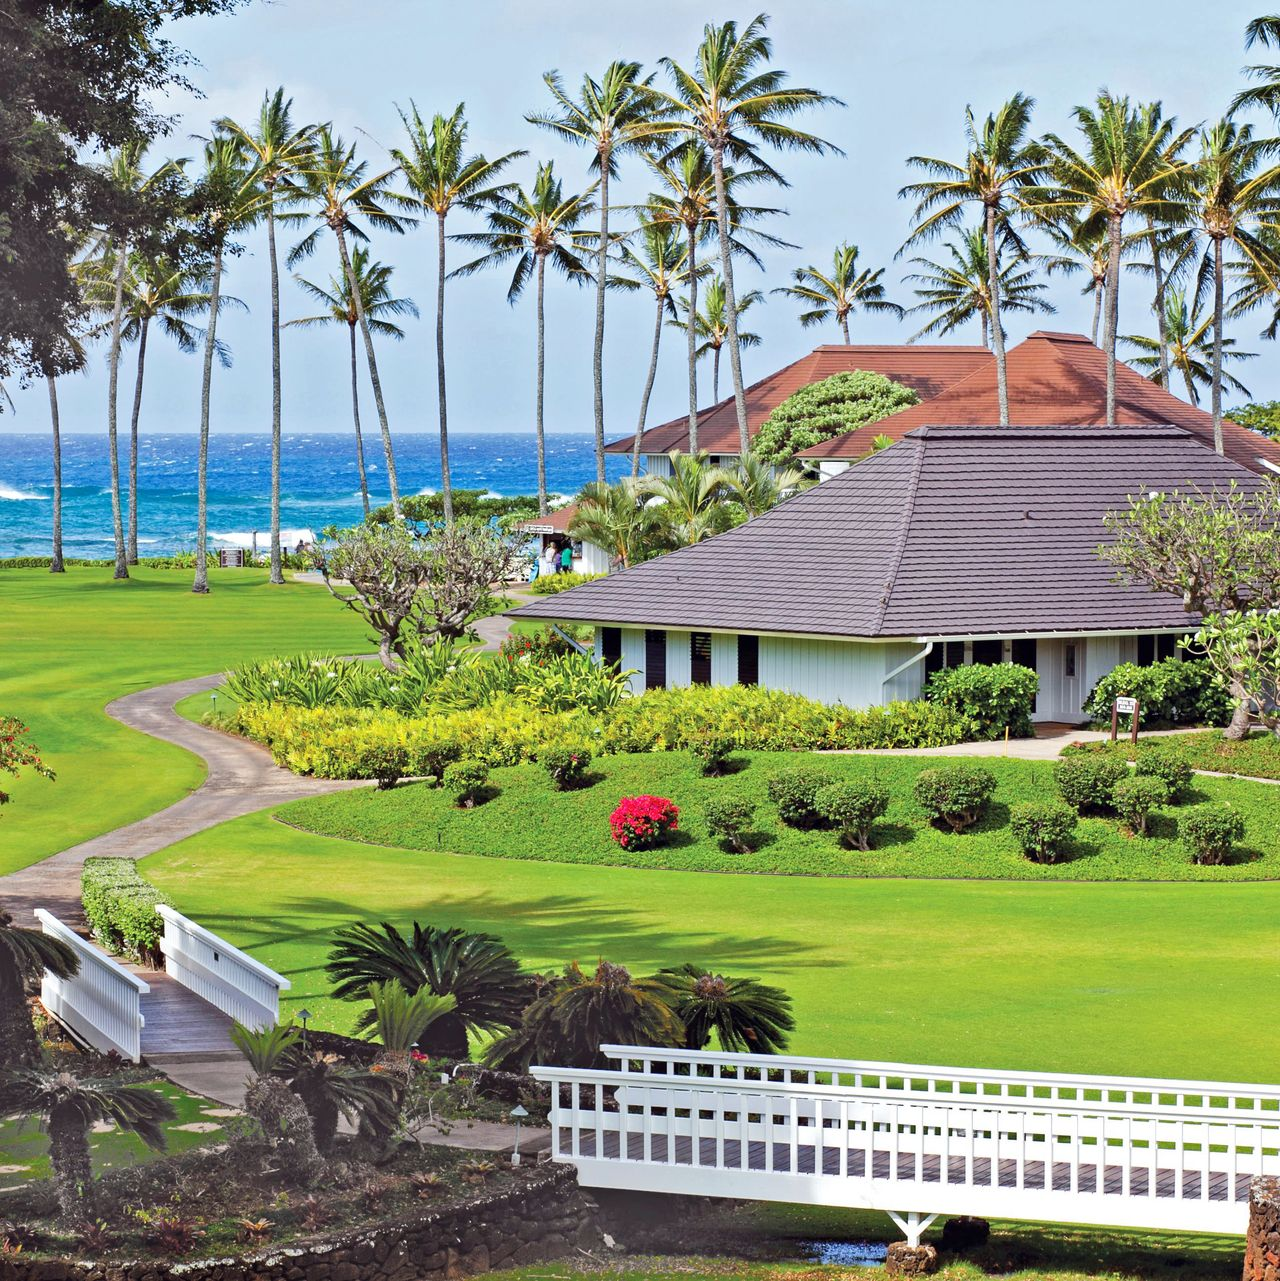 Koloa Kauai Sheraton In Hawaii: Hotel, Hawaii: Kiahuna Plantation Resort Kauai By